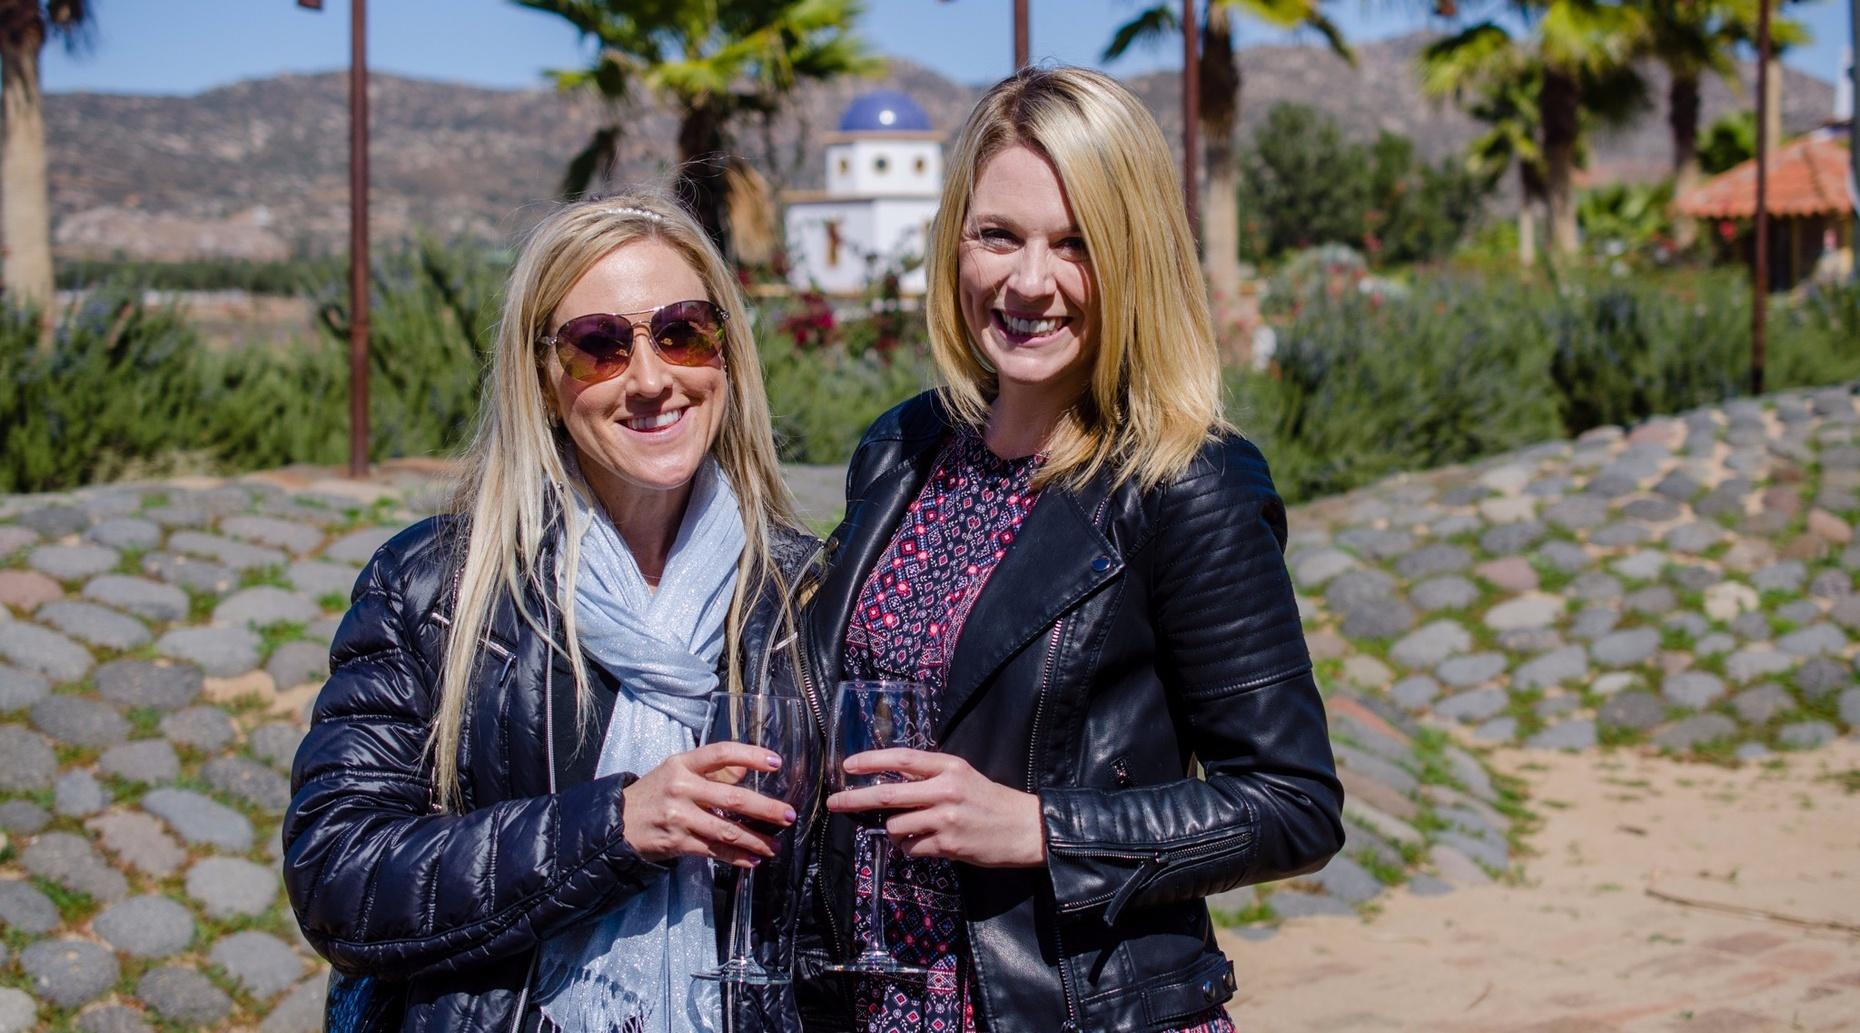 Valle de Guadalupe Wine Tour